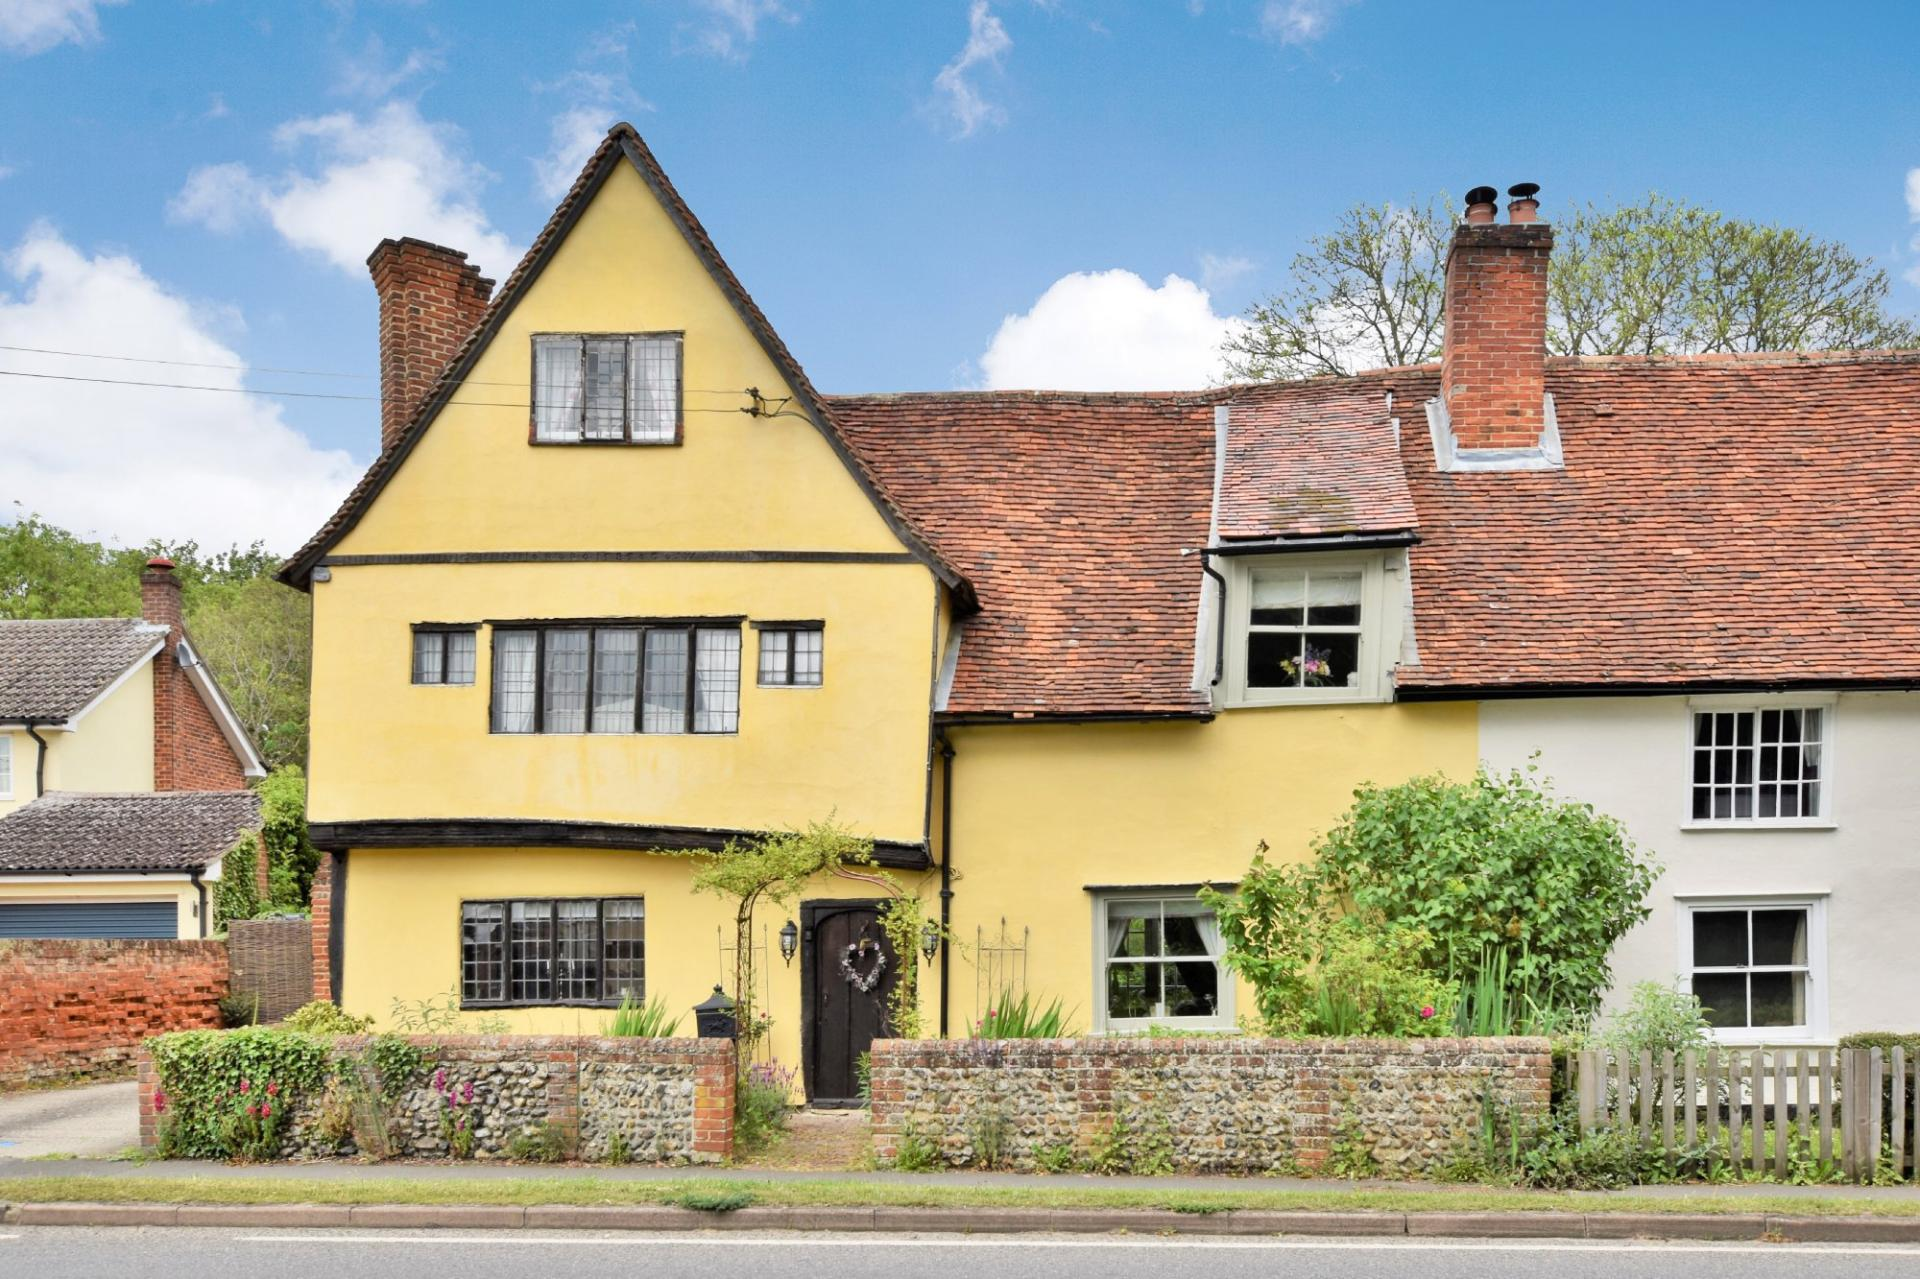 attractive traditional yellow Grade II listed hall house 1400s